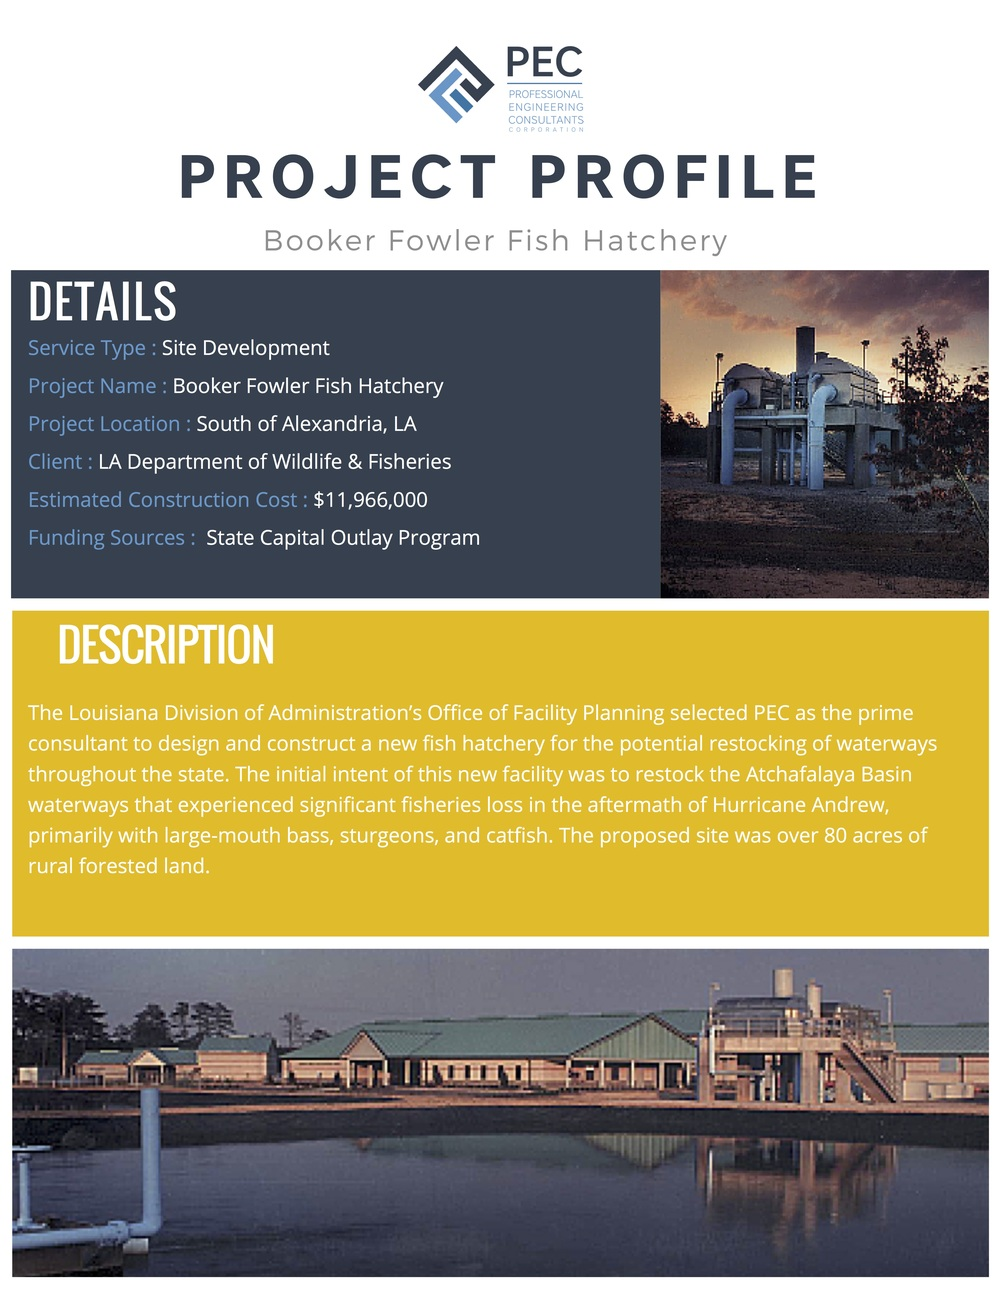 Project Profile_bookerfowlerfishhatcheryfinal.jpg